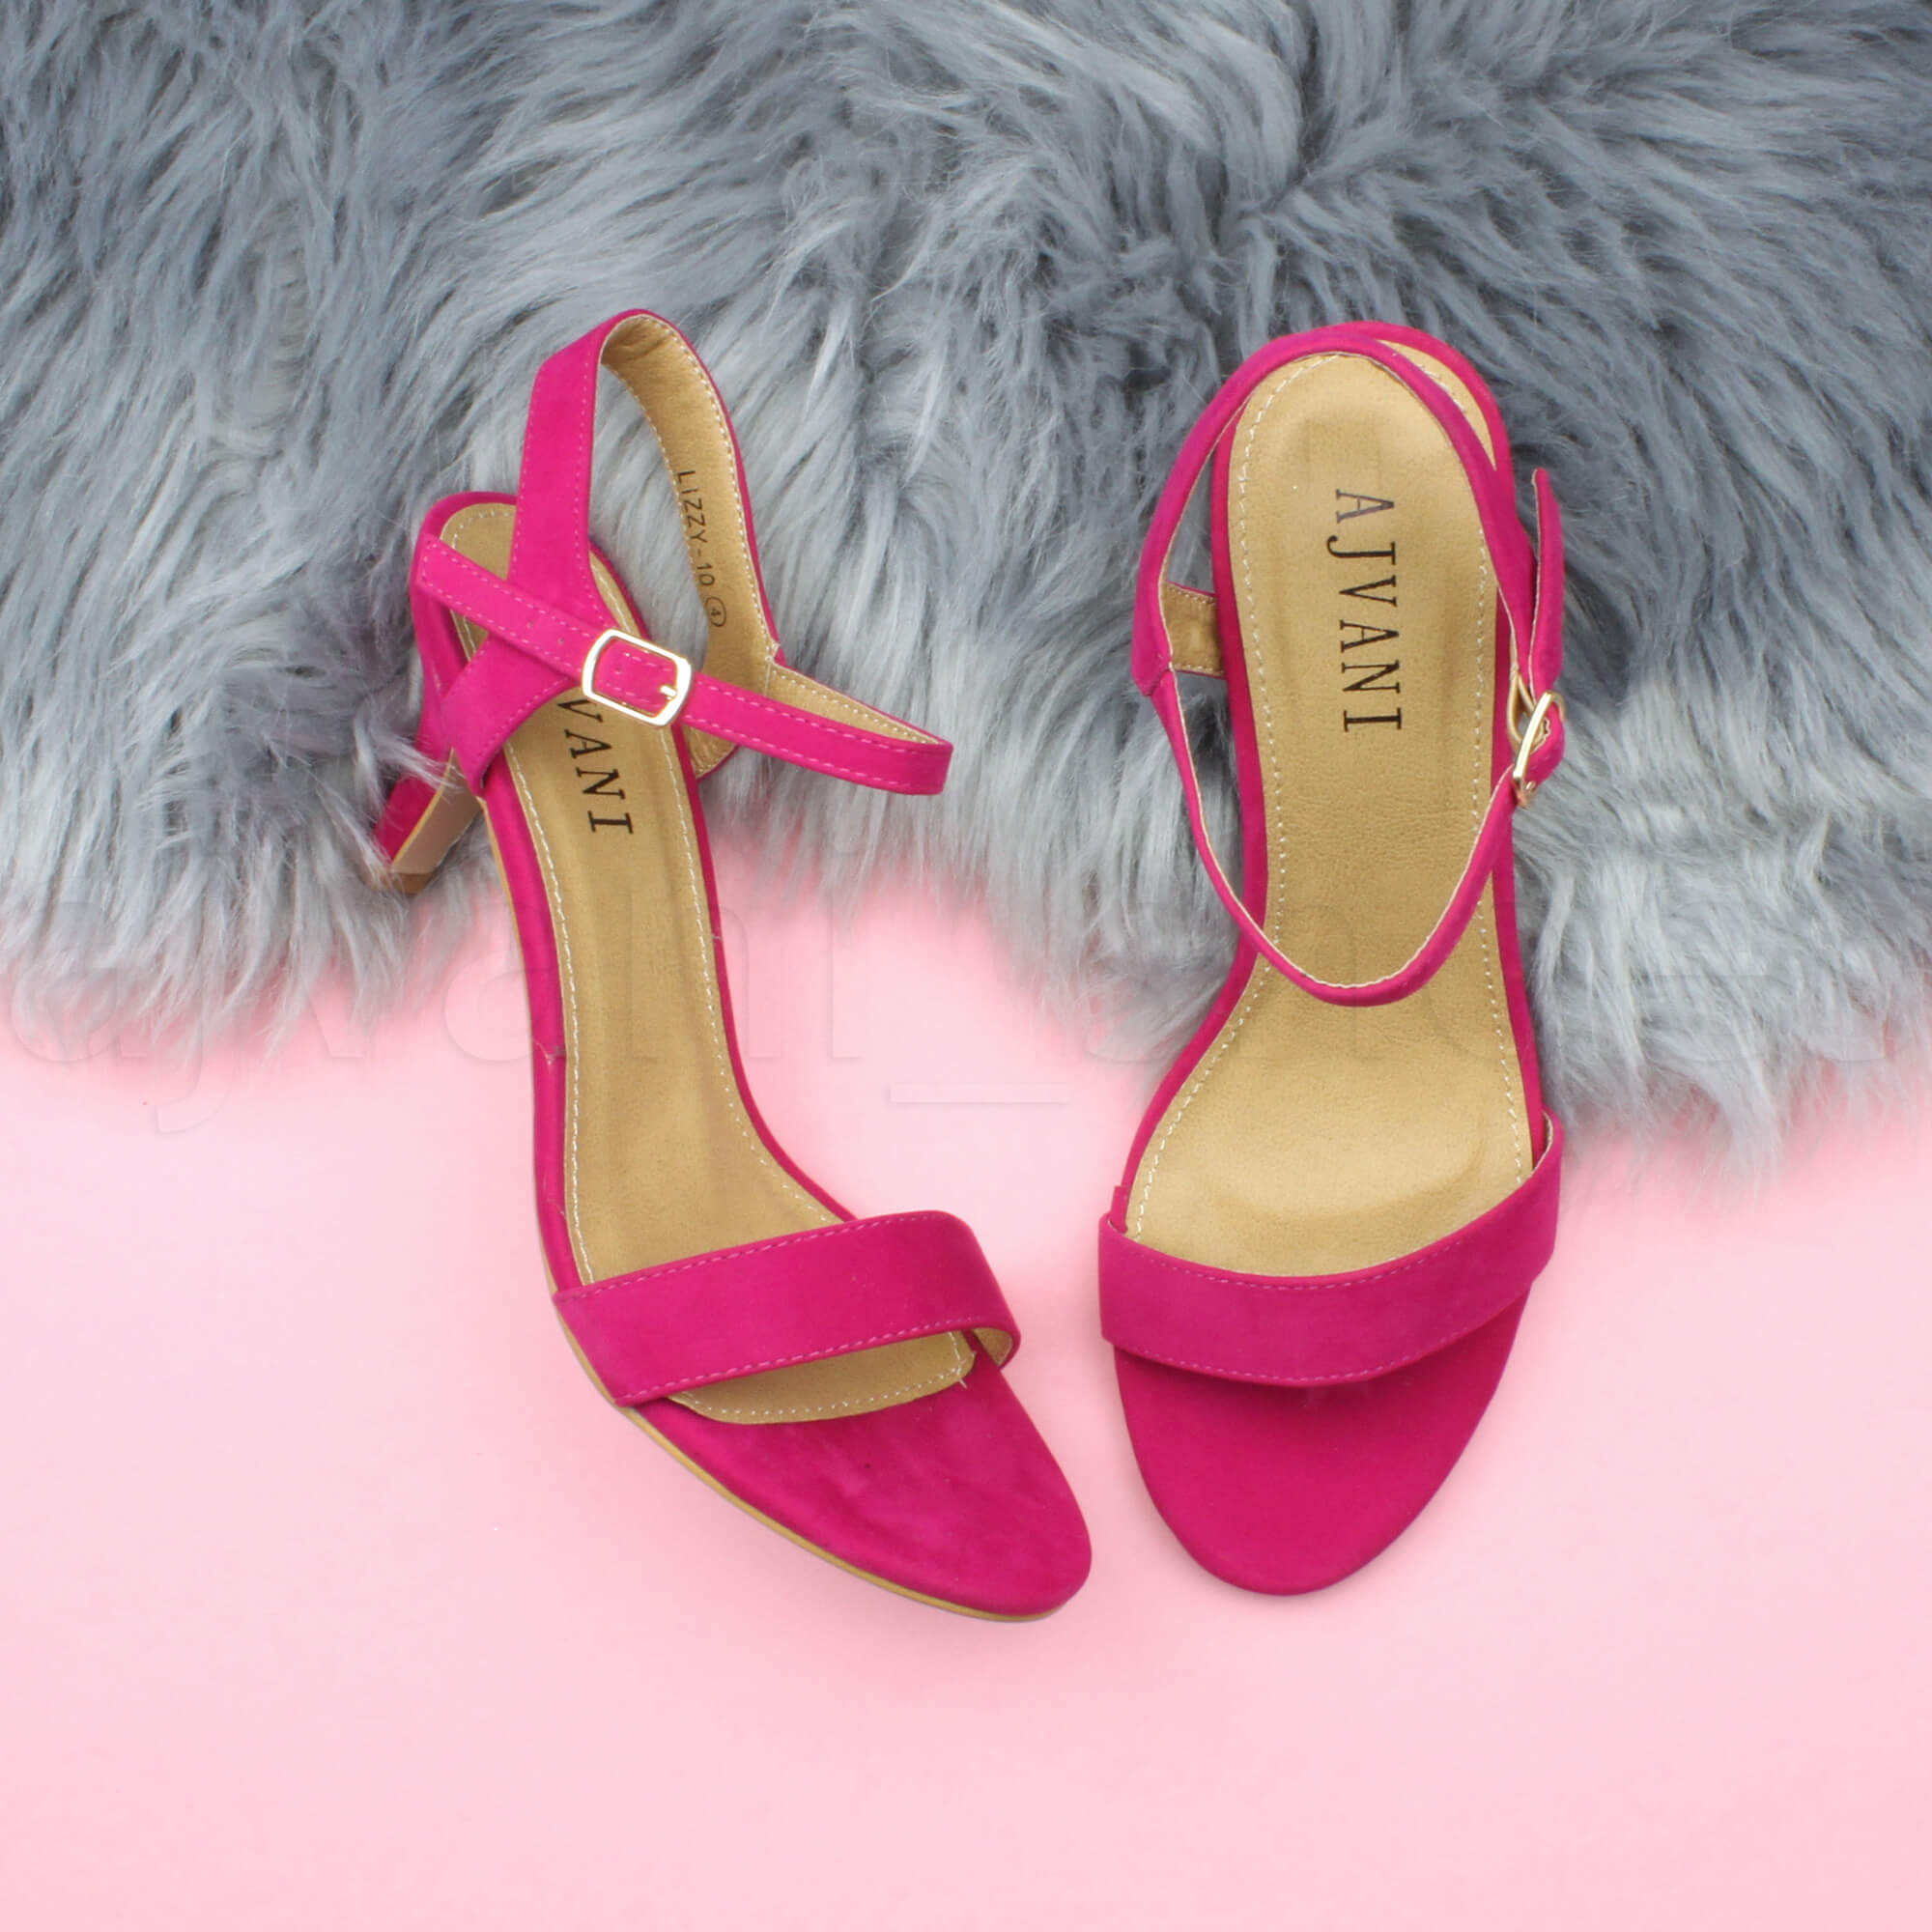 WOMENS-LADIES-HIGH-HEEL-BUCKLE-STRAPPY-BASIC-BARELY-THERE-SANDALS-SHOES-SIZE thumbnail 33